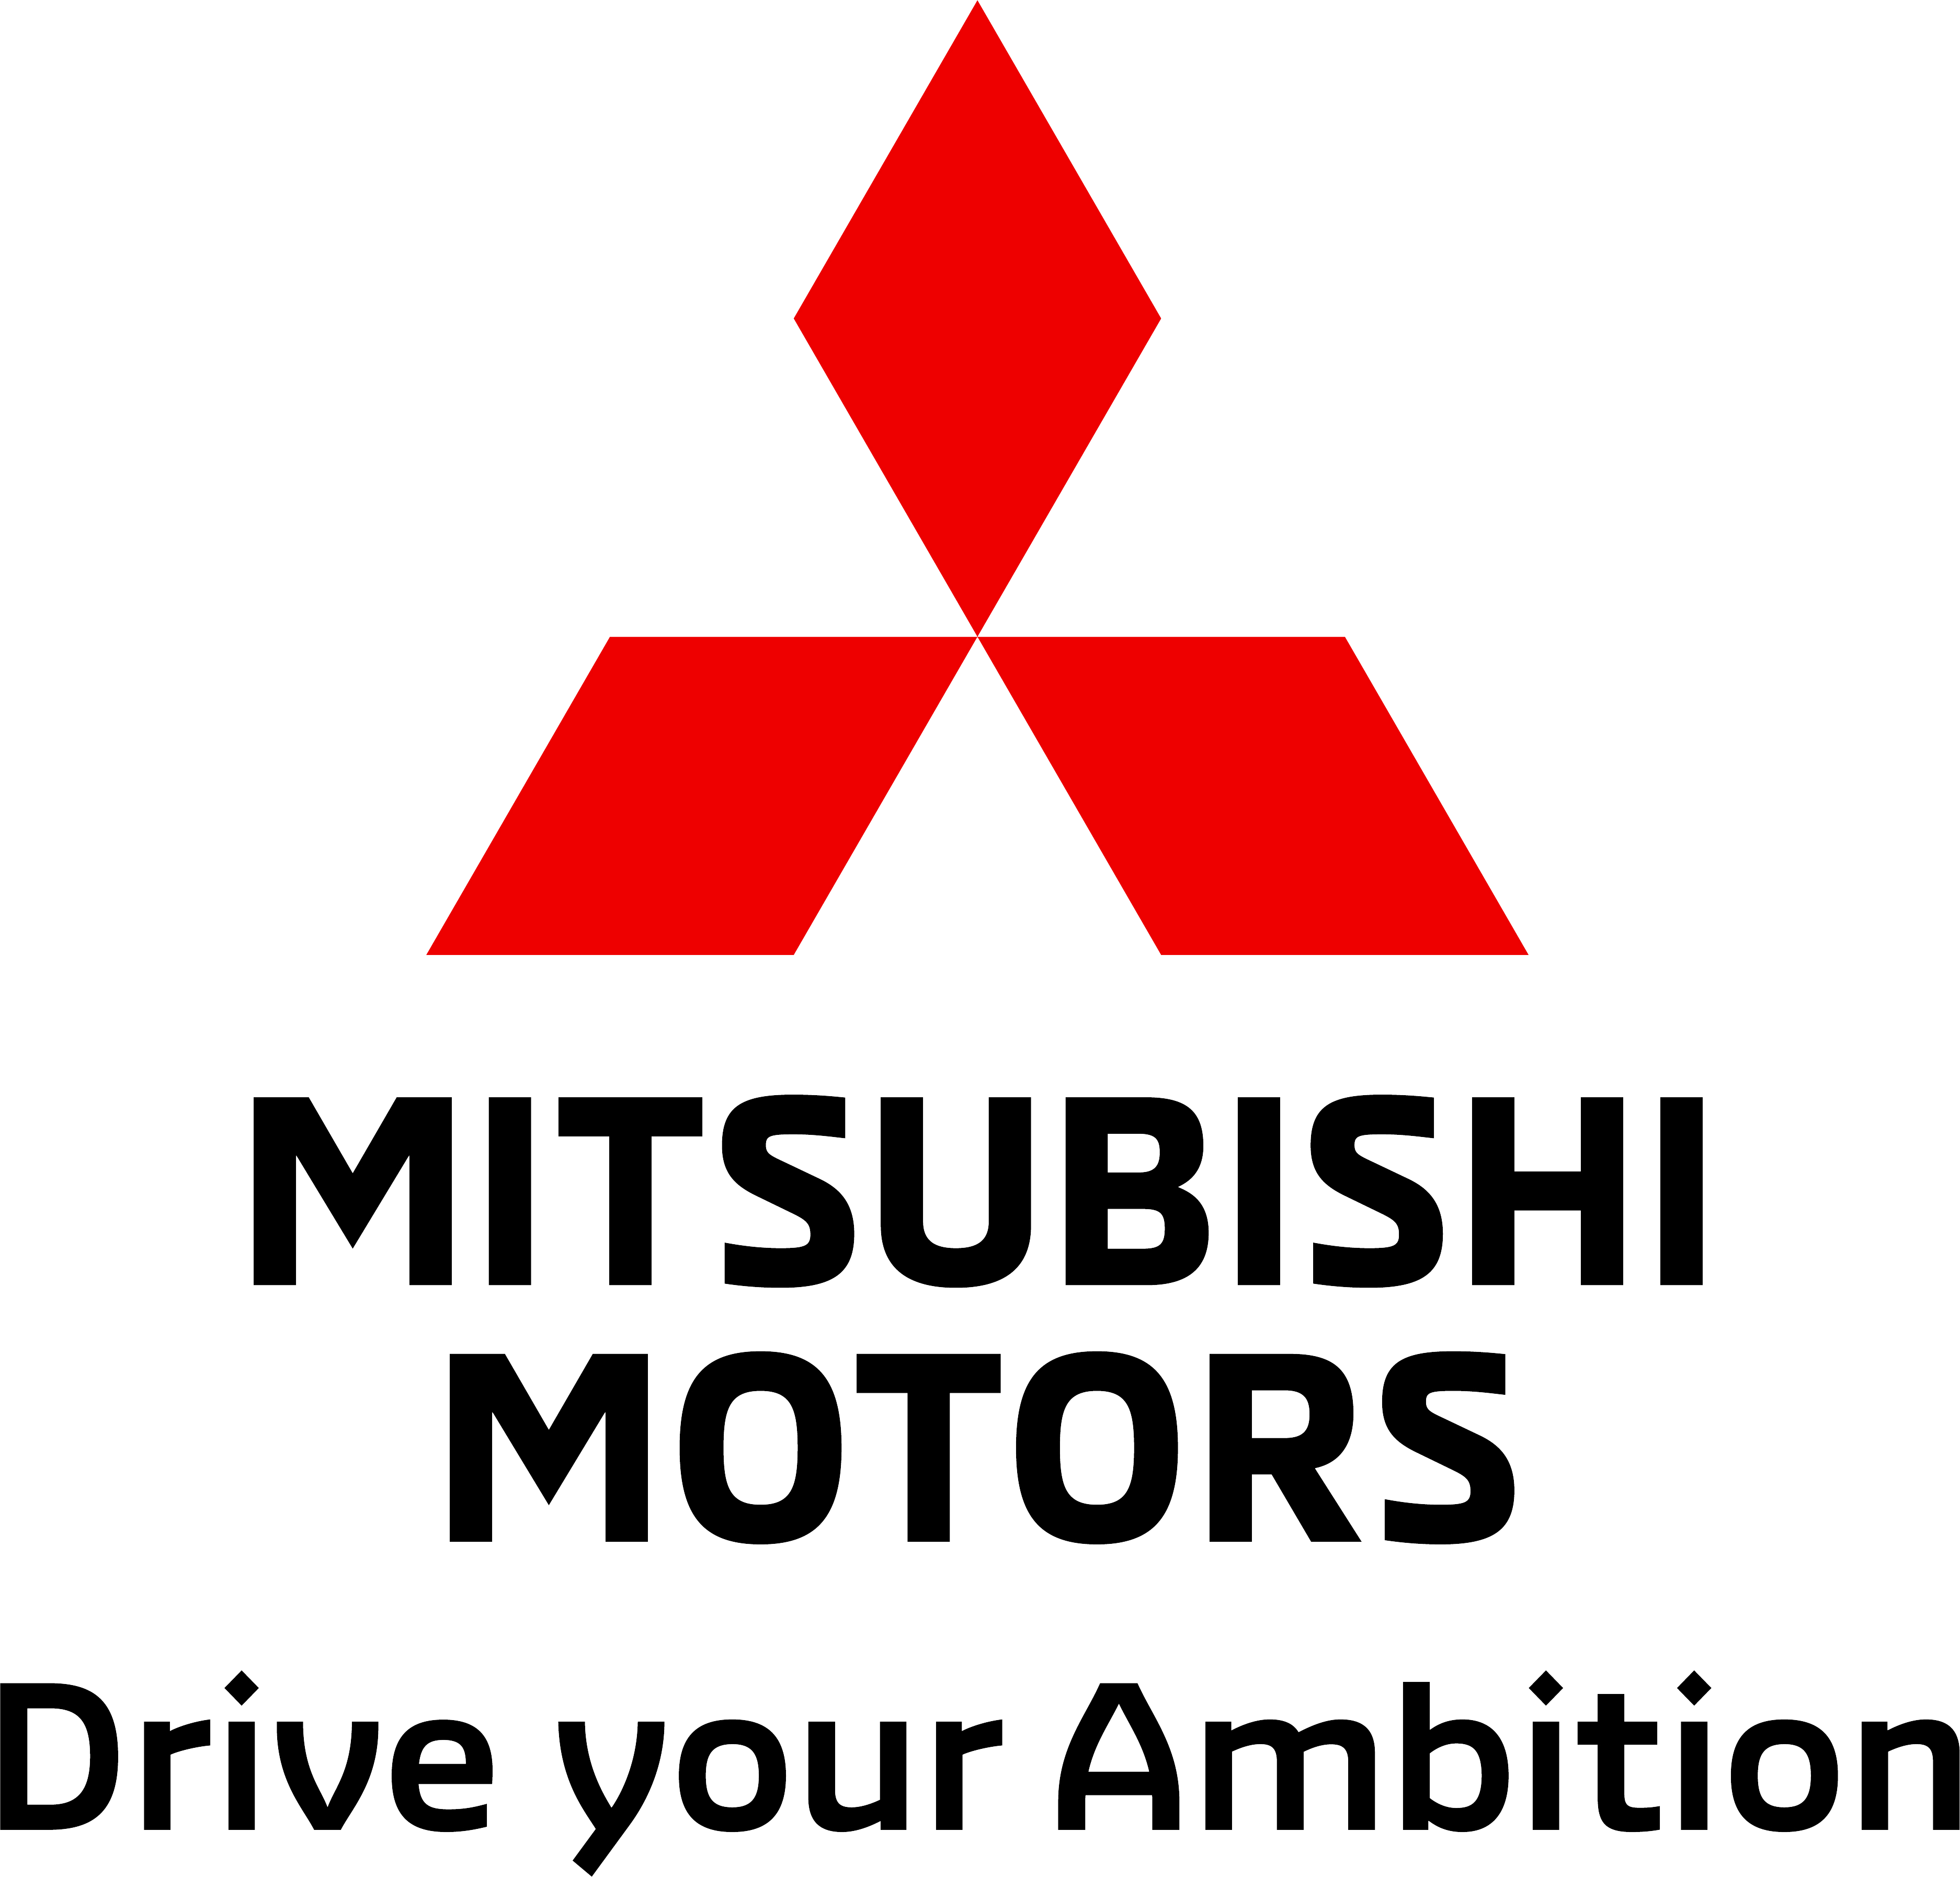 South Park Mitsubishi